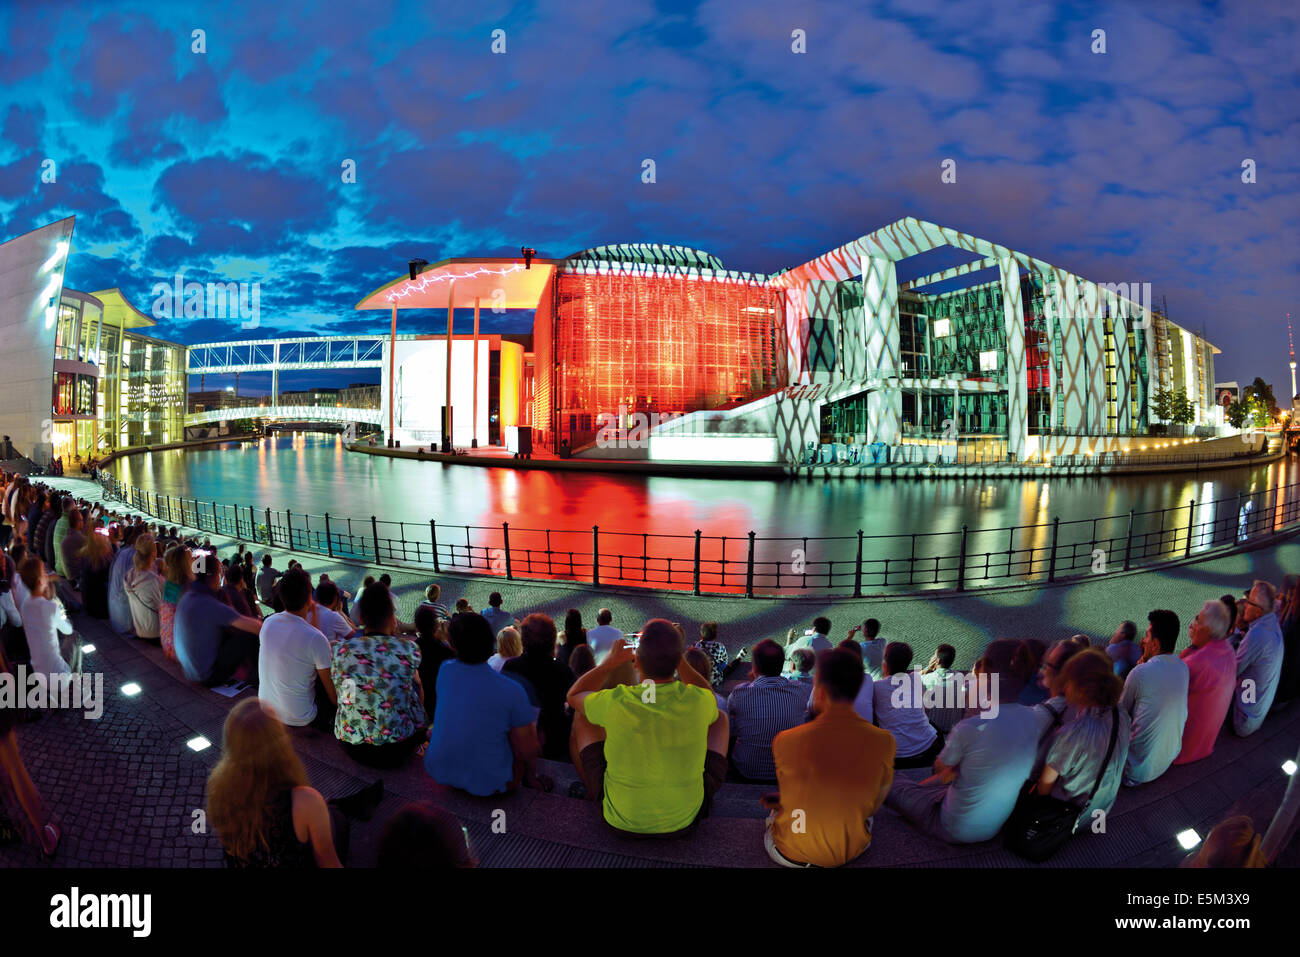 Germany, Berlin: Tourists watching nocturnal video documentary about the history of the Reichstag  at Spree riverside - Stock Image